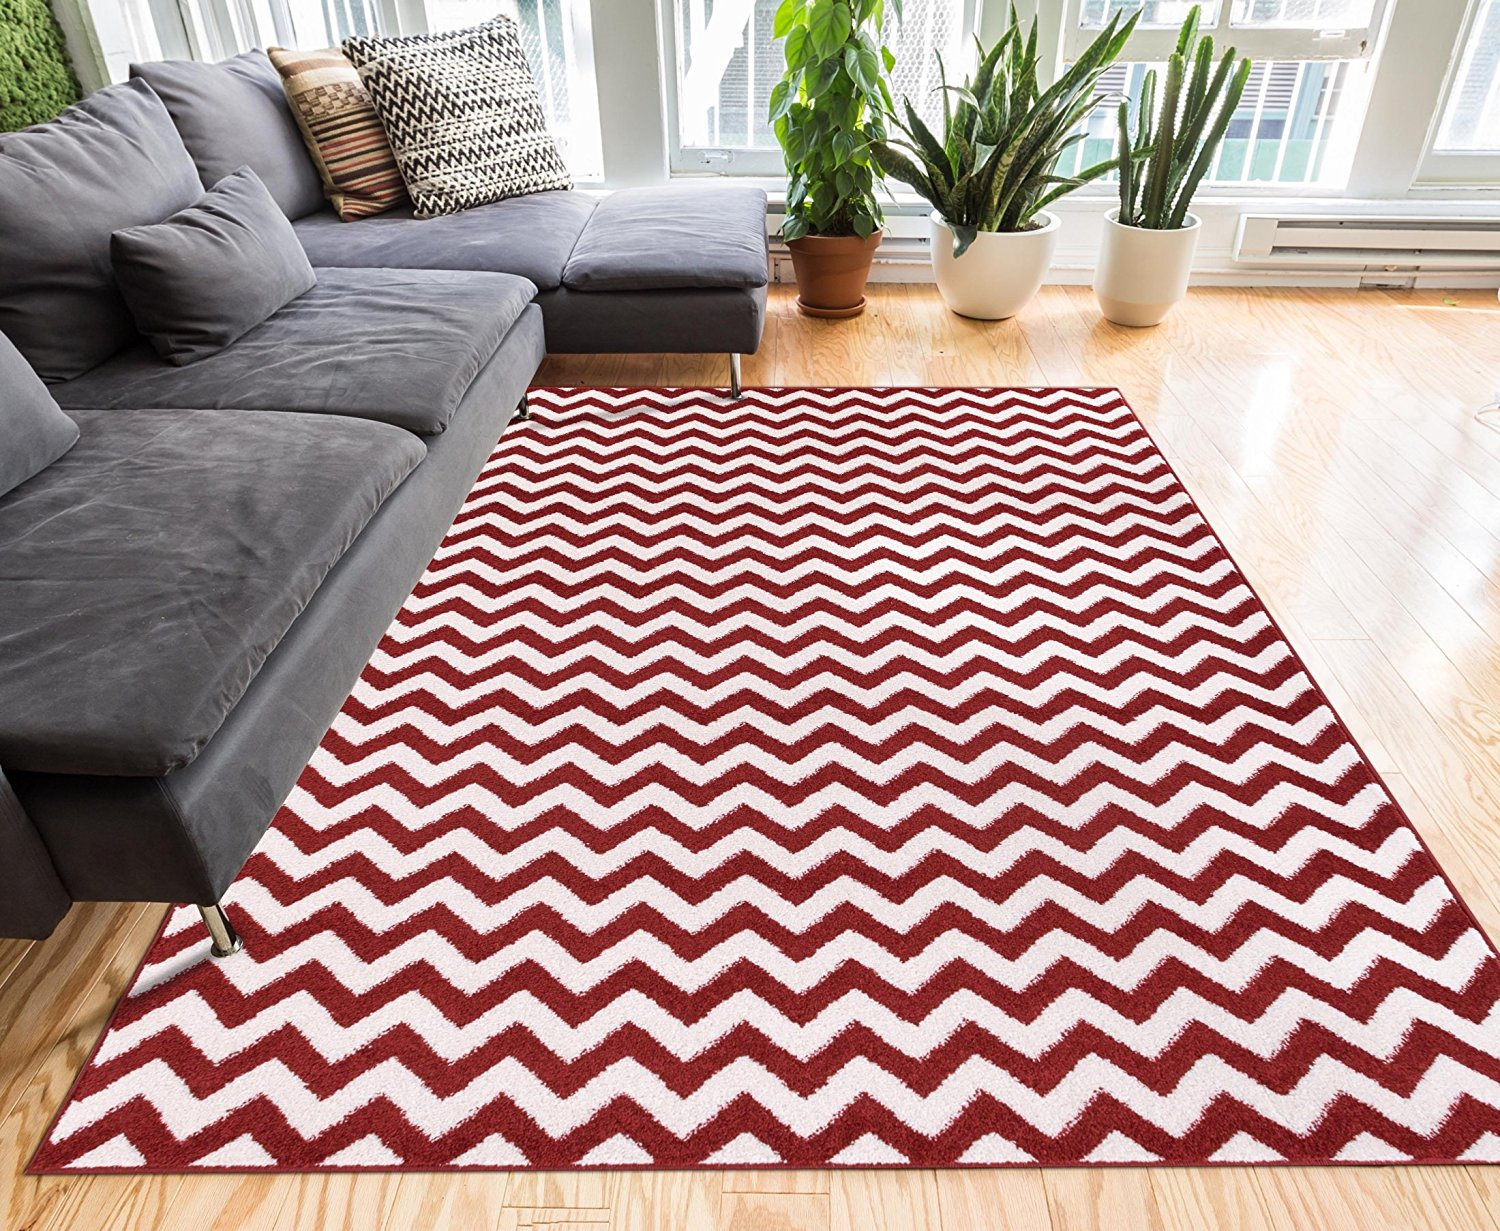 Funky Red Area Rugs 5 Creative Designs To Choose From